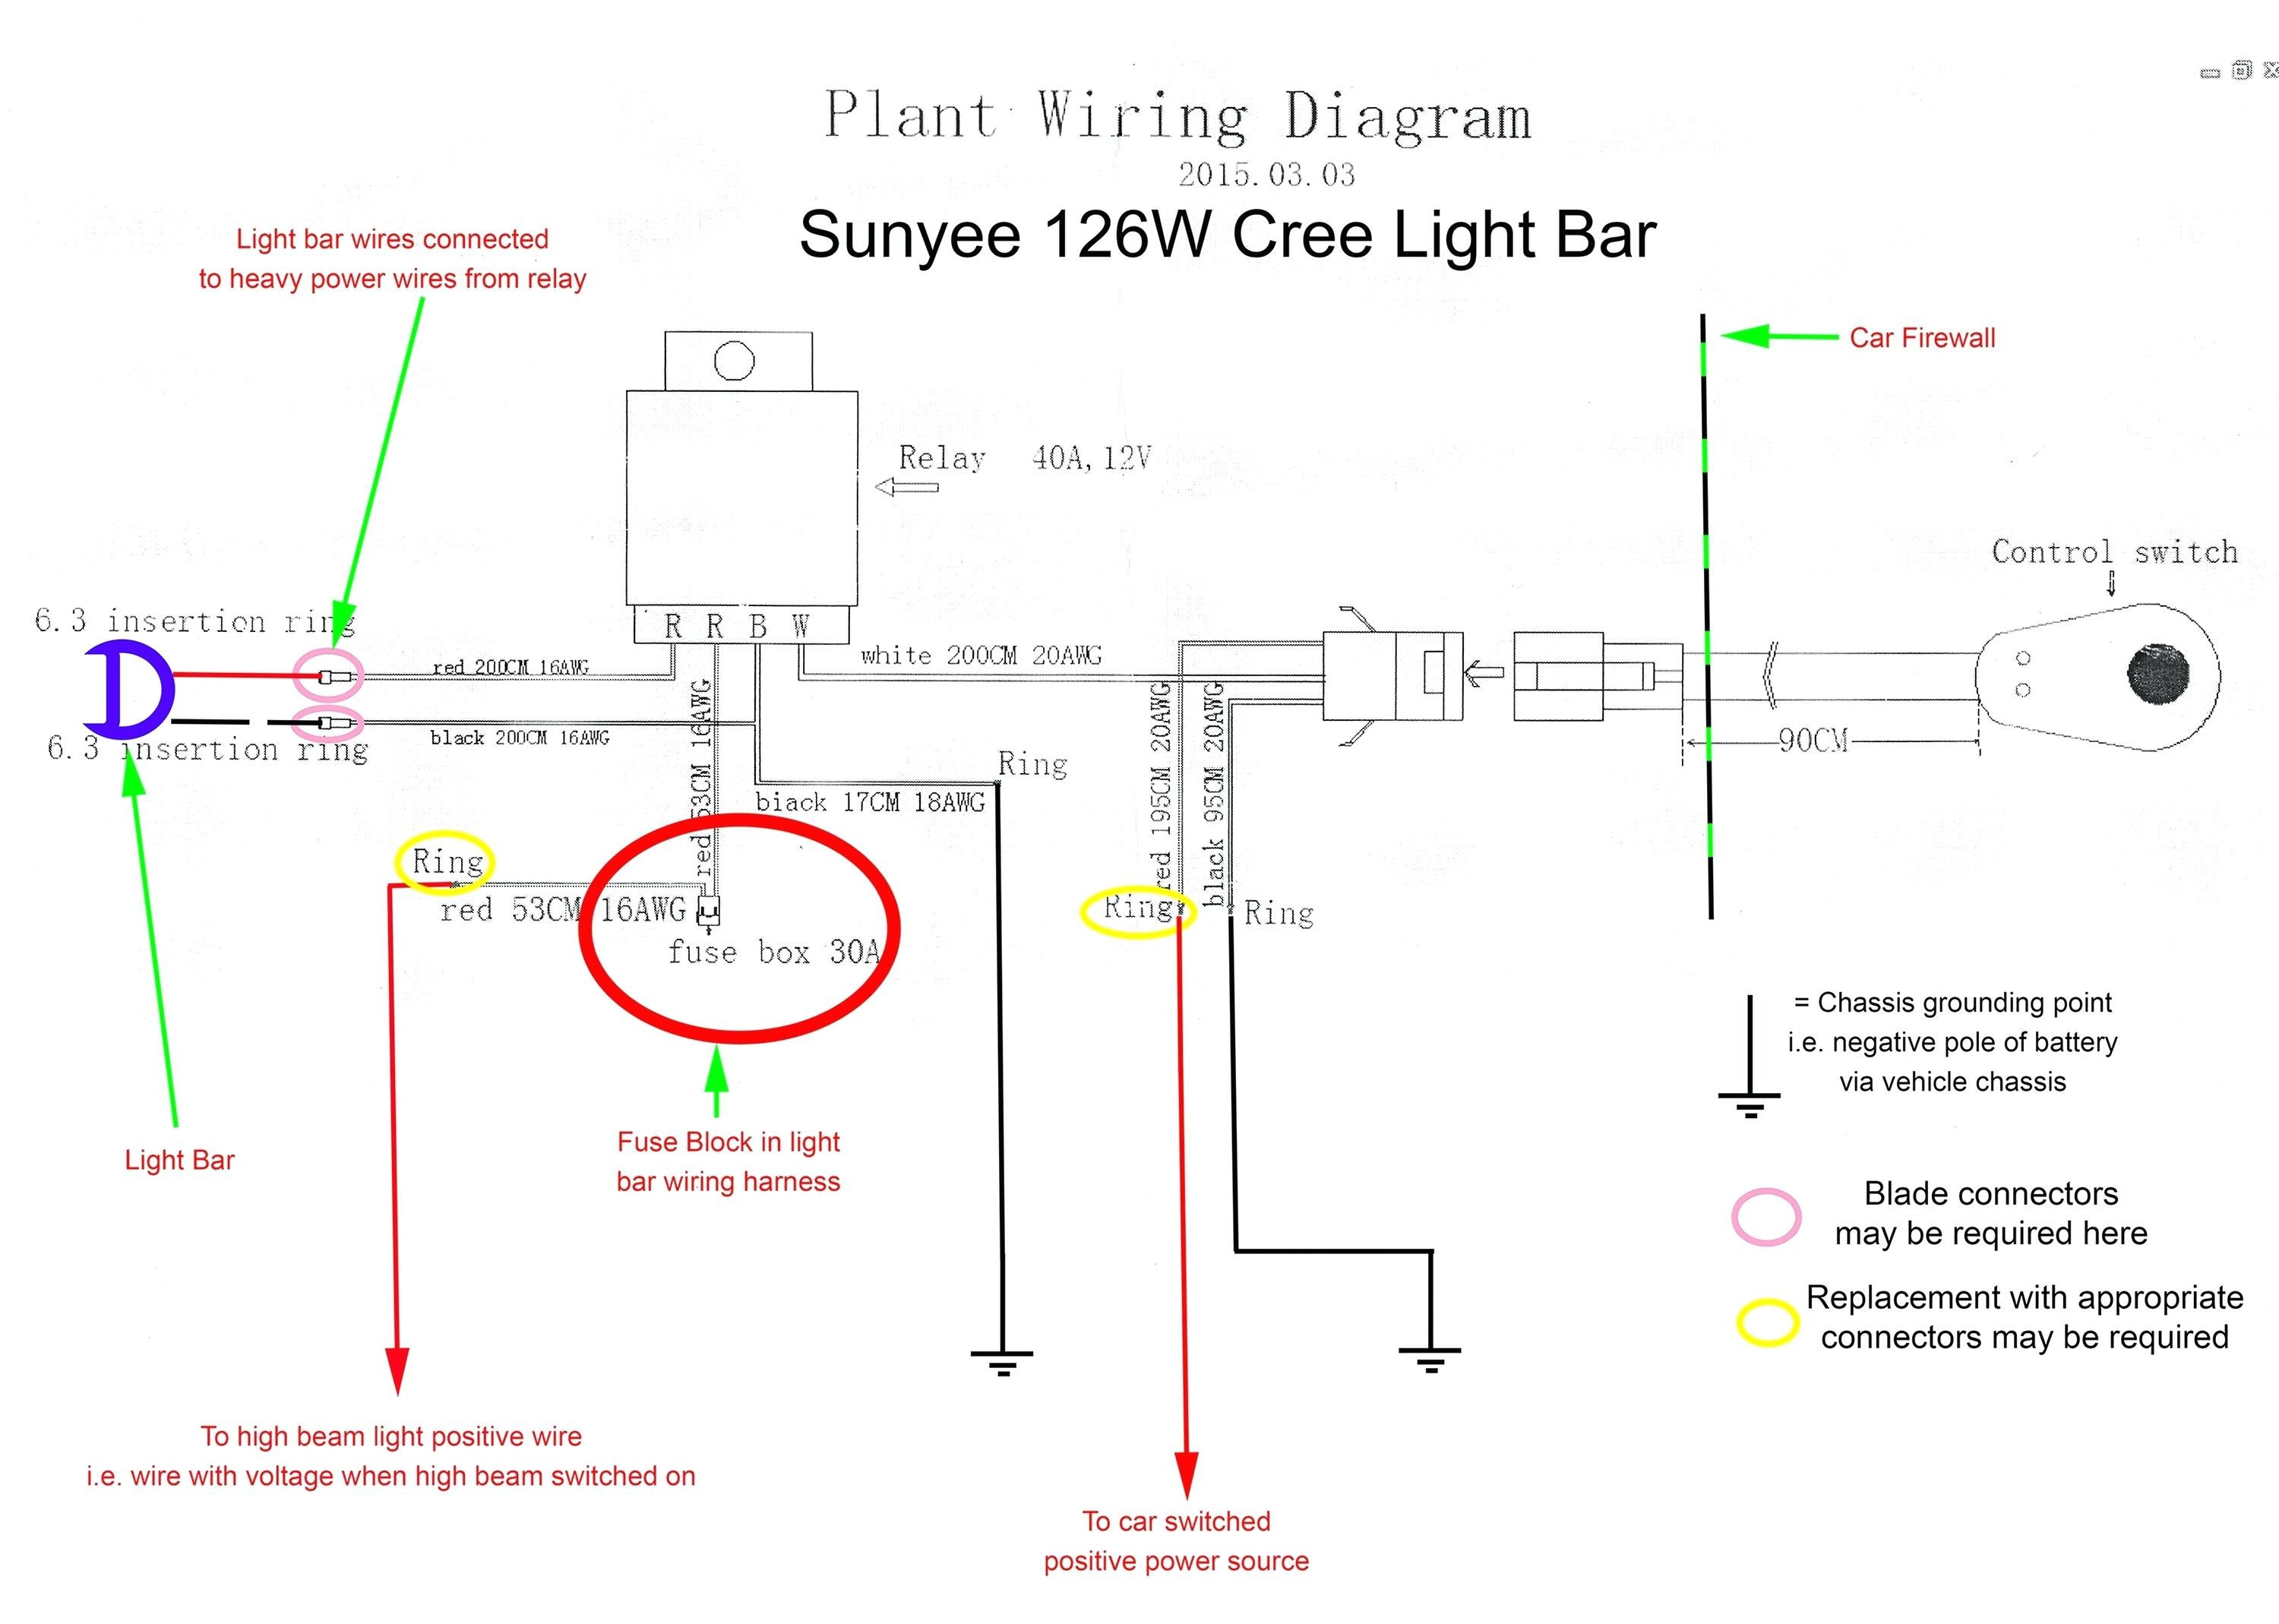 Led Street Light Wiring Diagram Library Voltage Post Lights Outdoor On Solar Awesome Mold Schematic Lamp